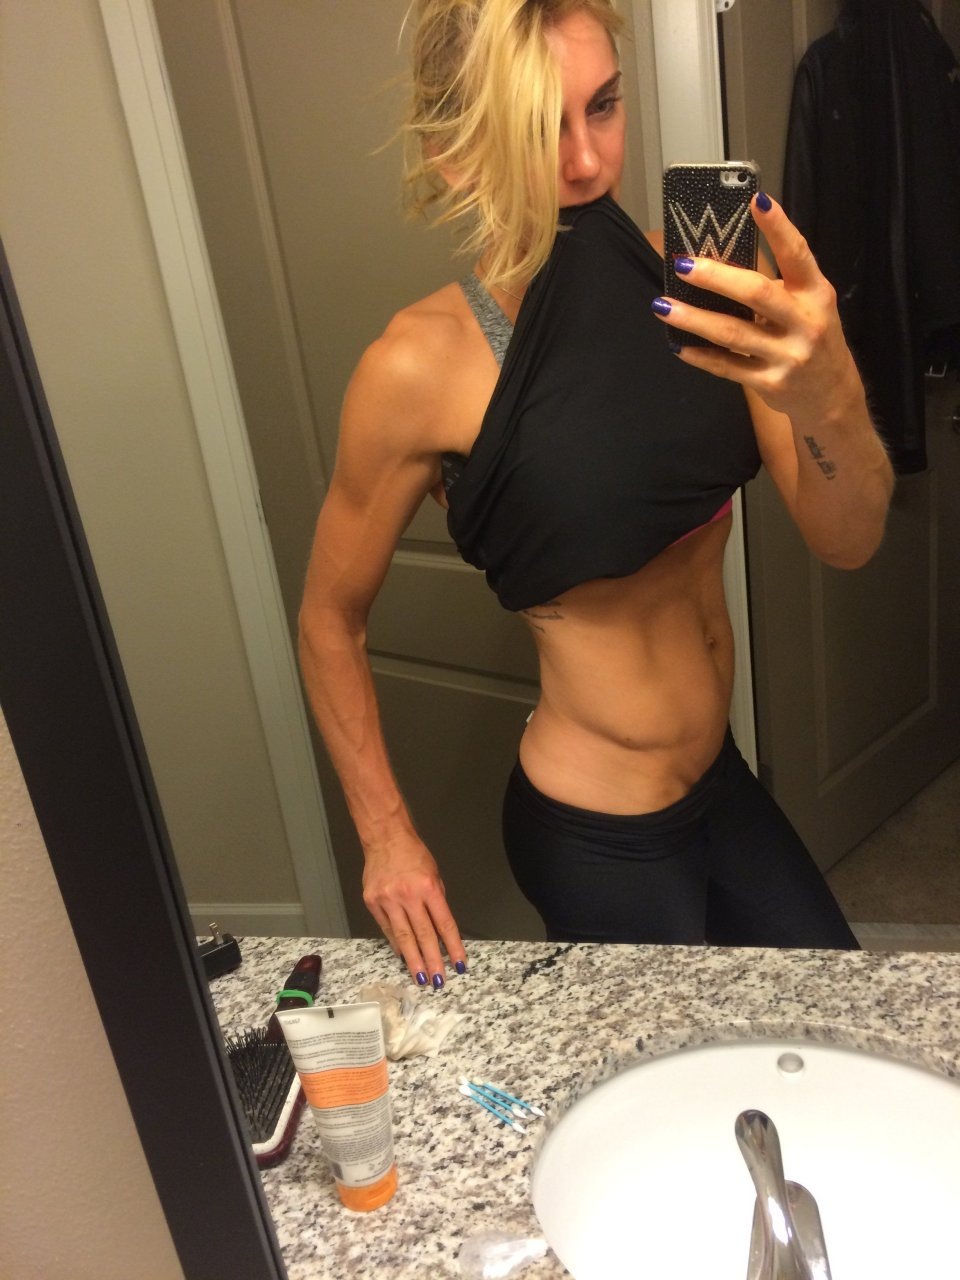 Wwe charlotte leaked images